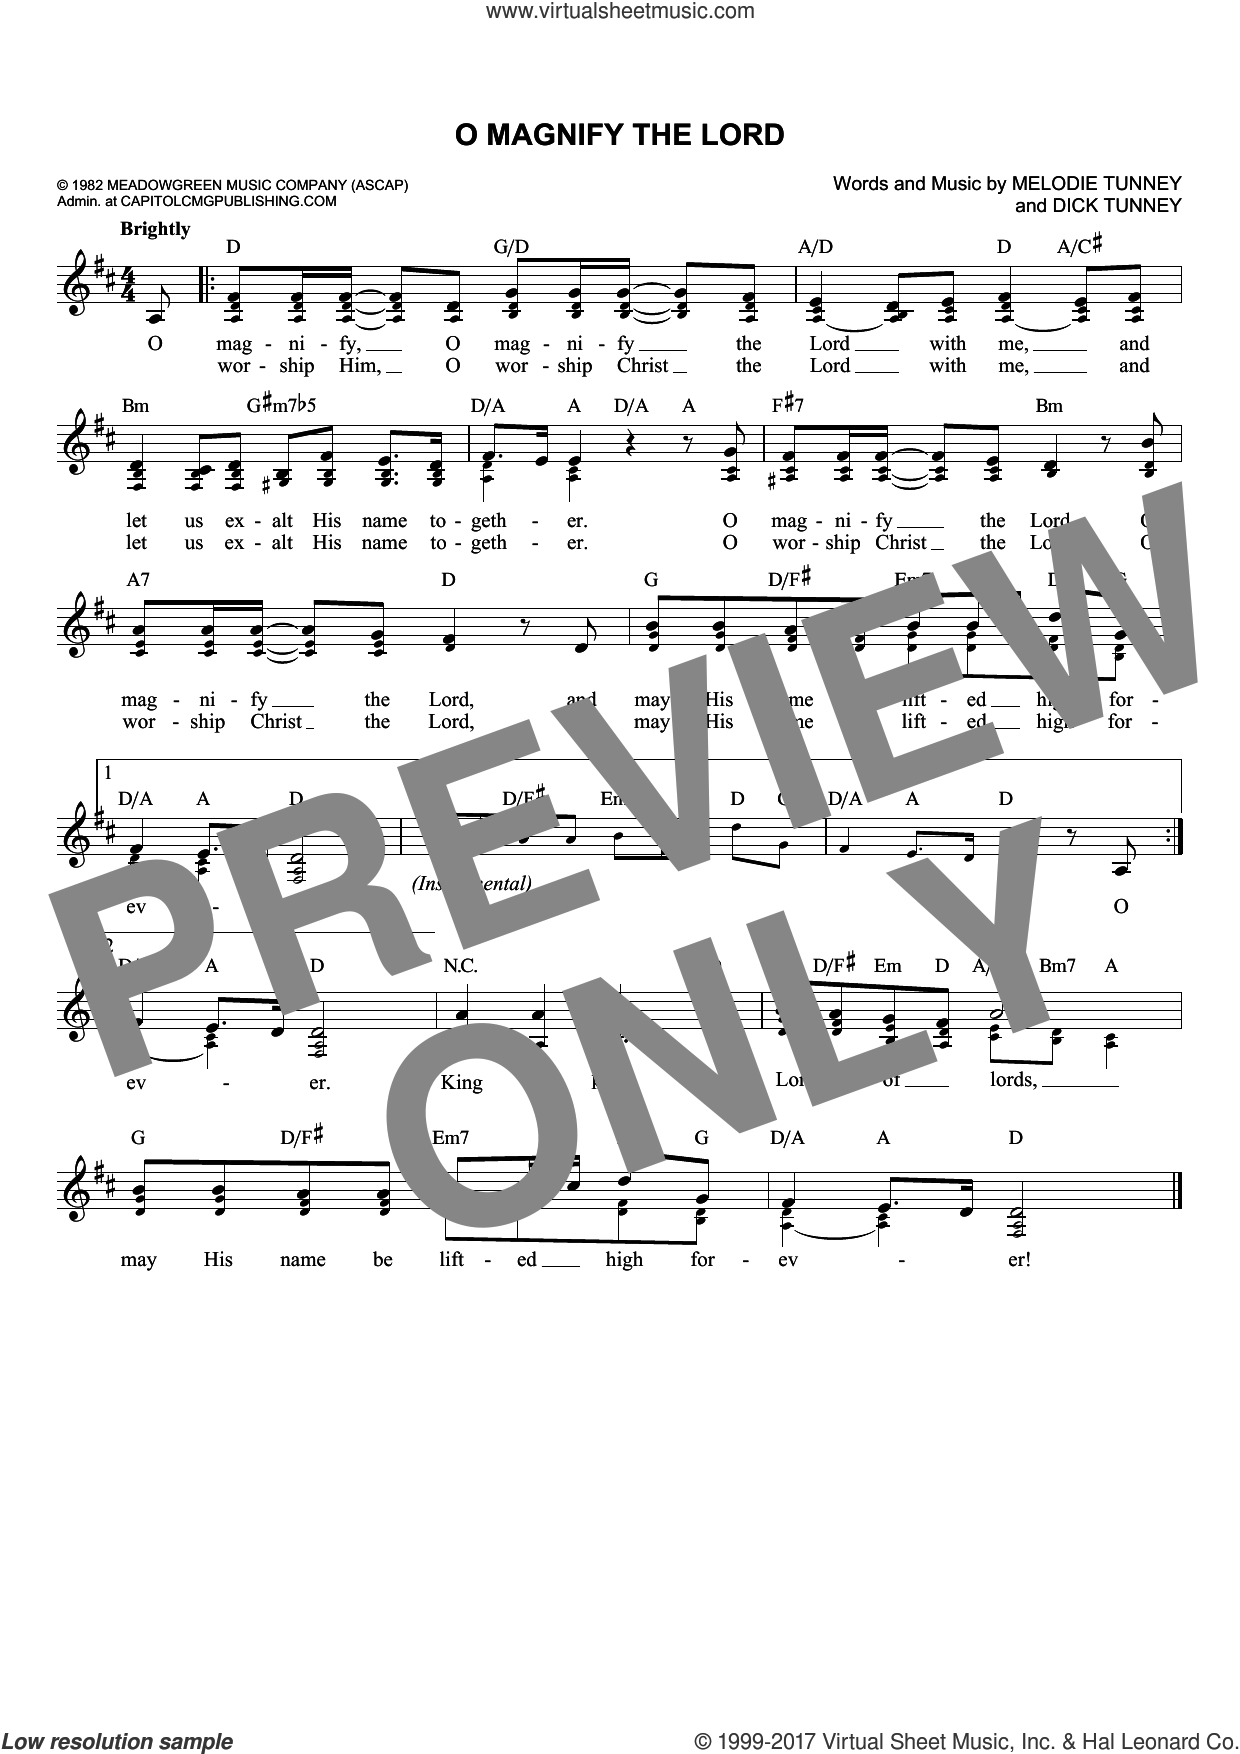 O Magnify The Lord sheet music for voice and other instruments (fake book) by Dick Tunney and Melodie Tunney, intermediate skill level